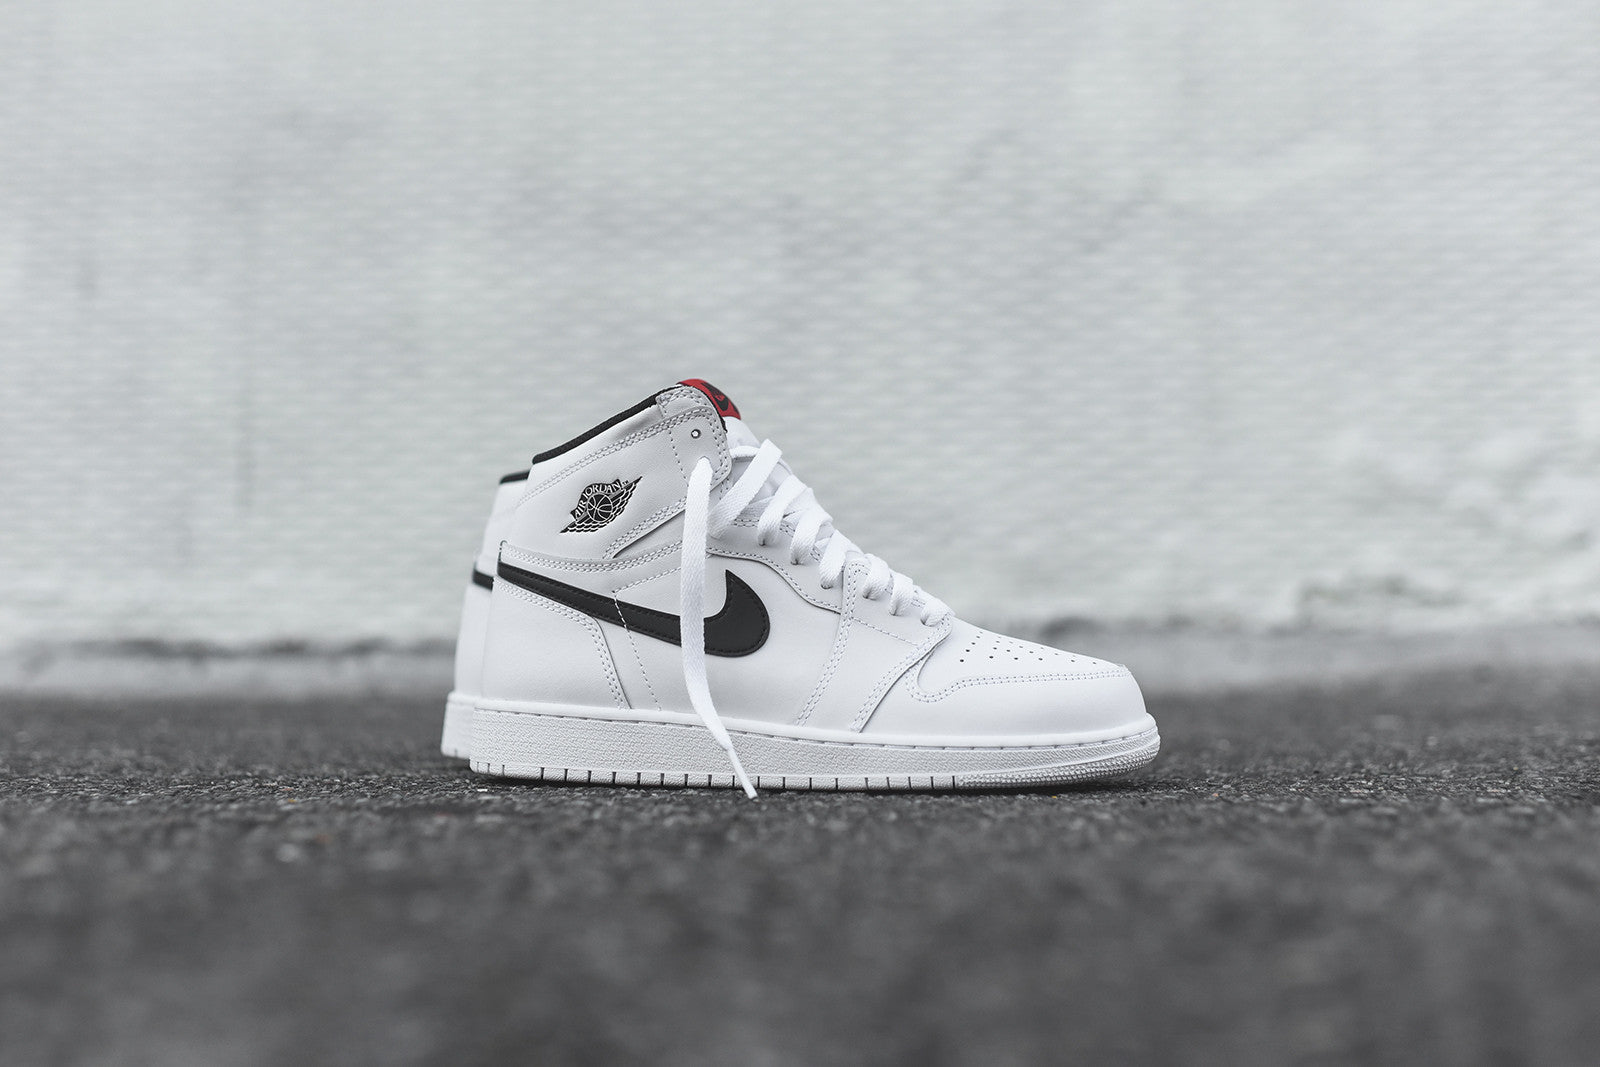 Nike GS Air Jordan 1 OG High - Yang